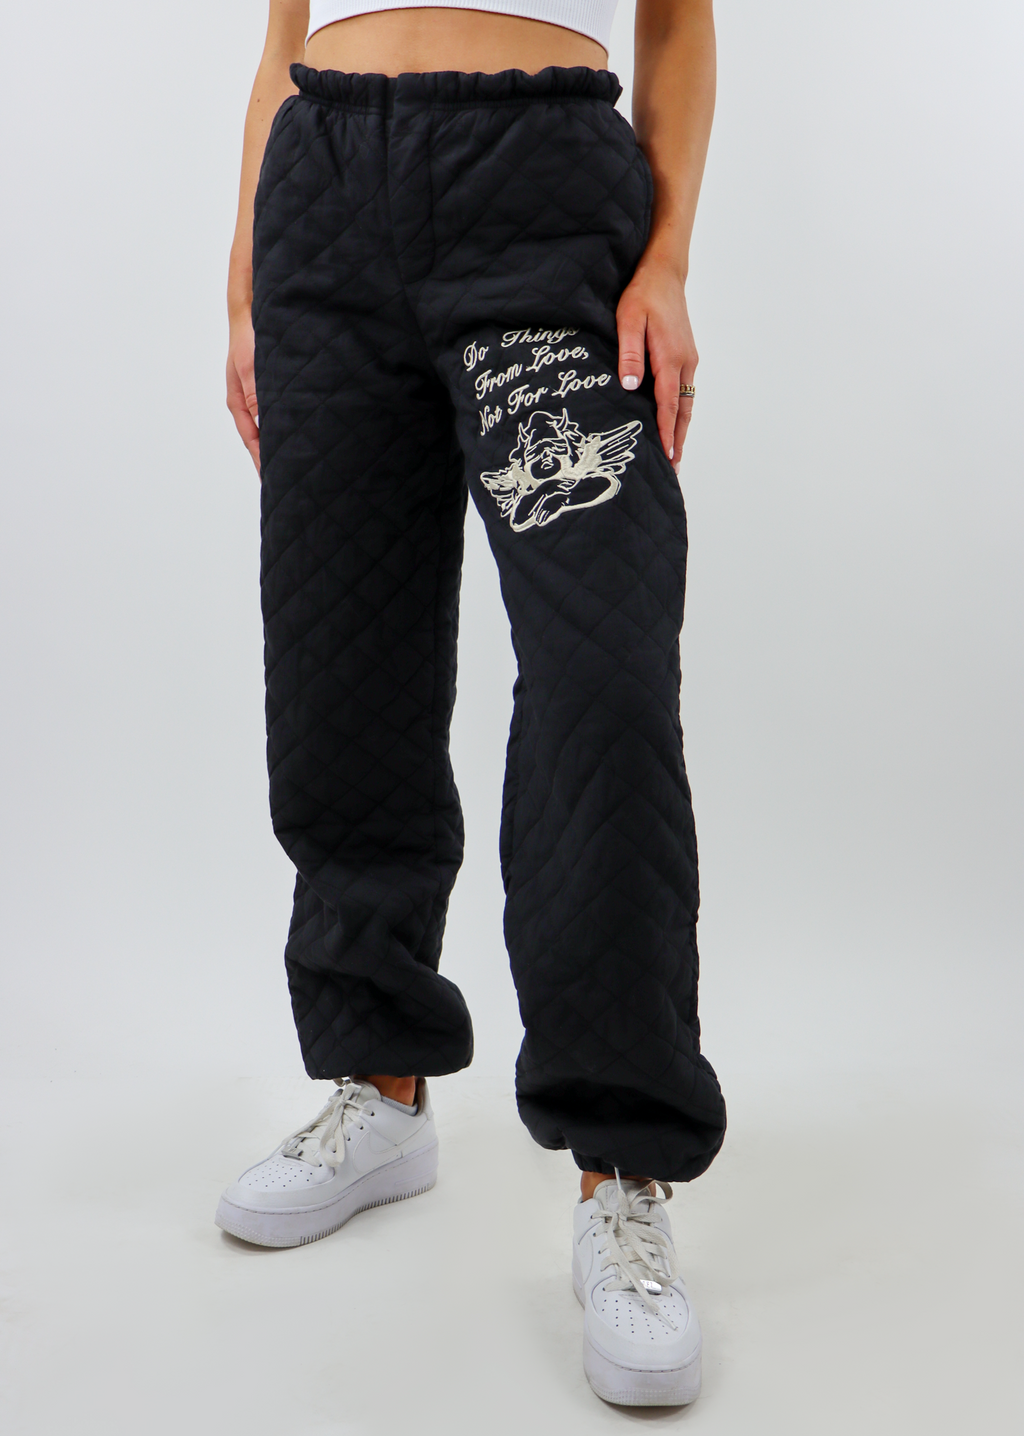 Boys Lie For Love Quilted Pants ★ Black